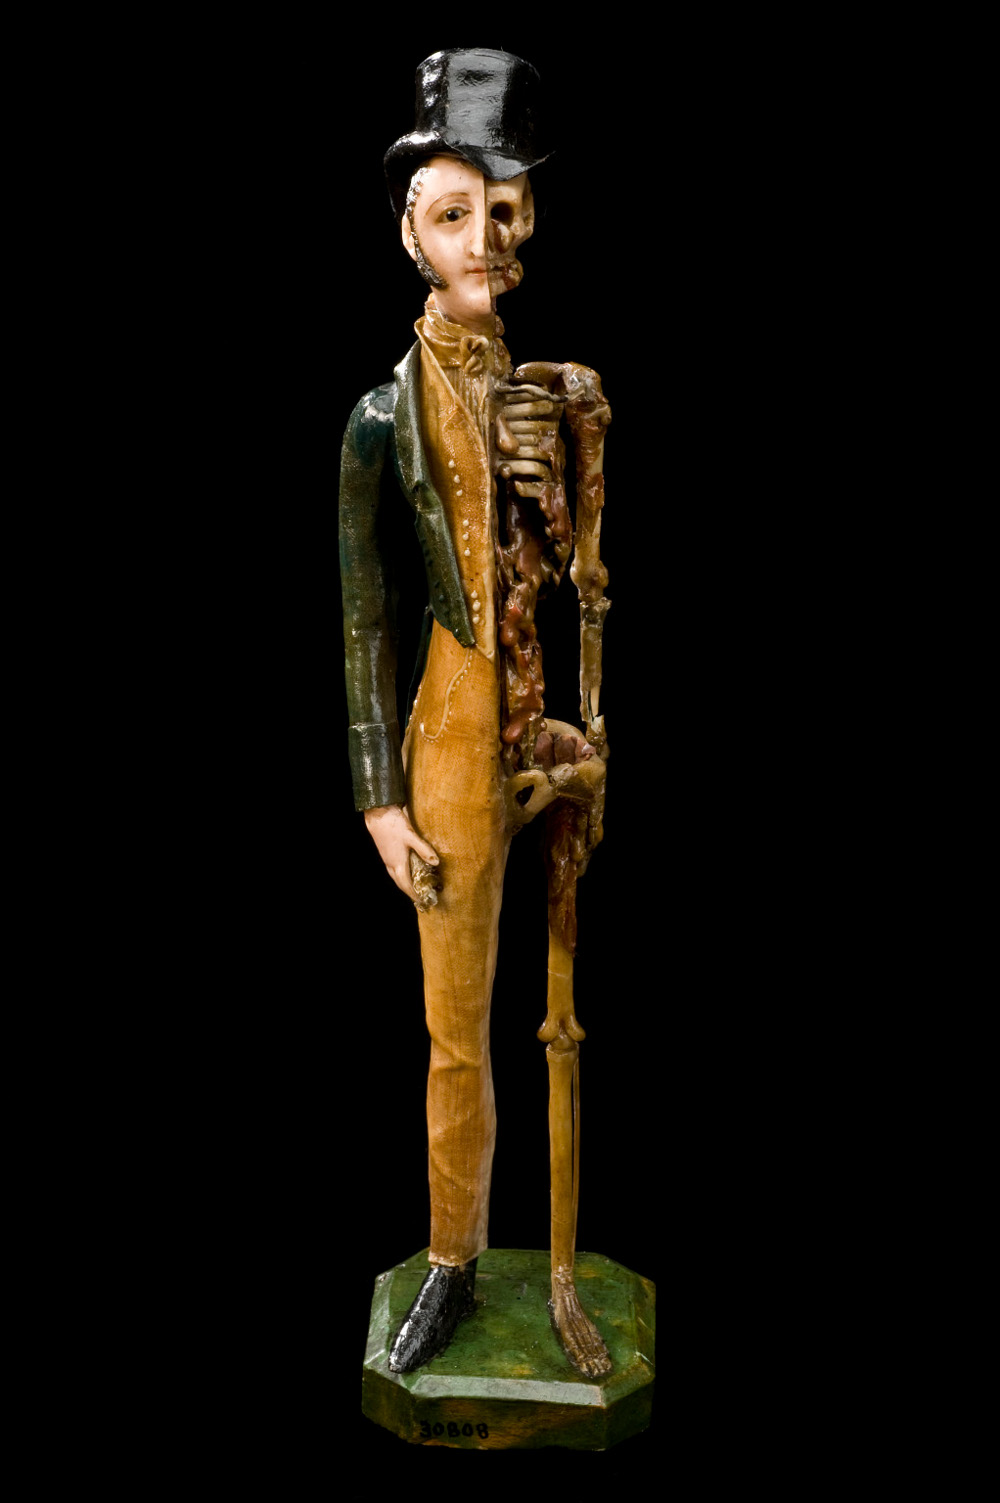 A male memento mori - an artistic reminder of the inevitability of death